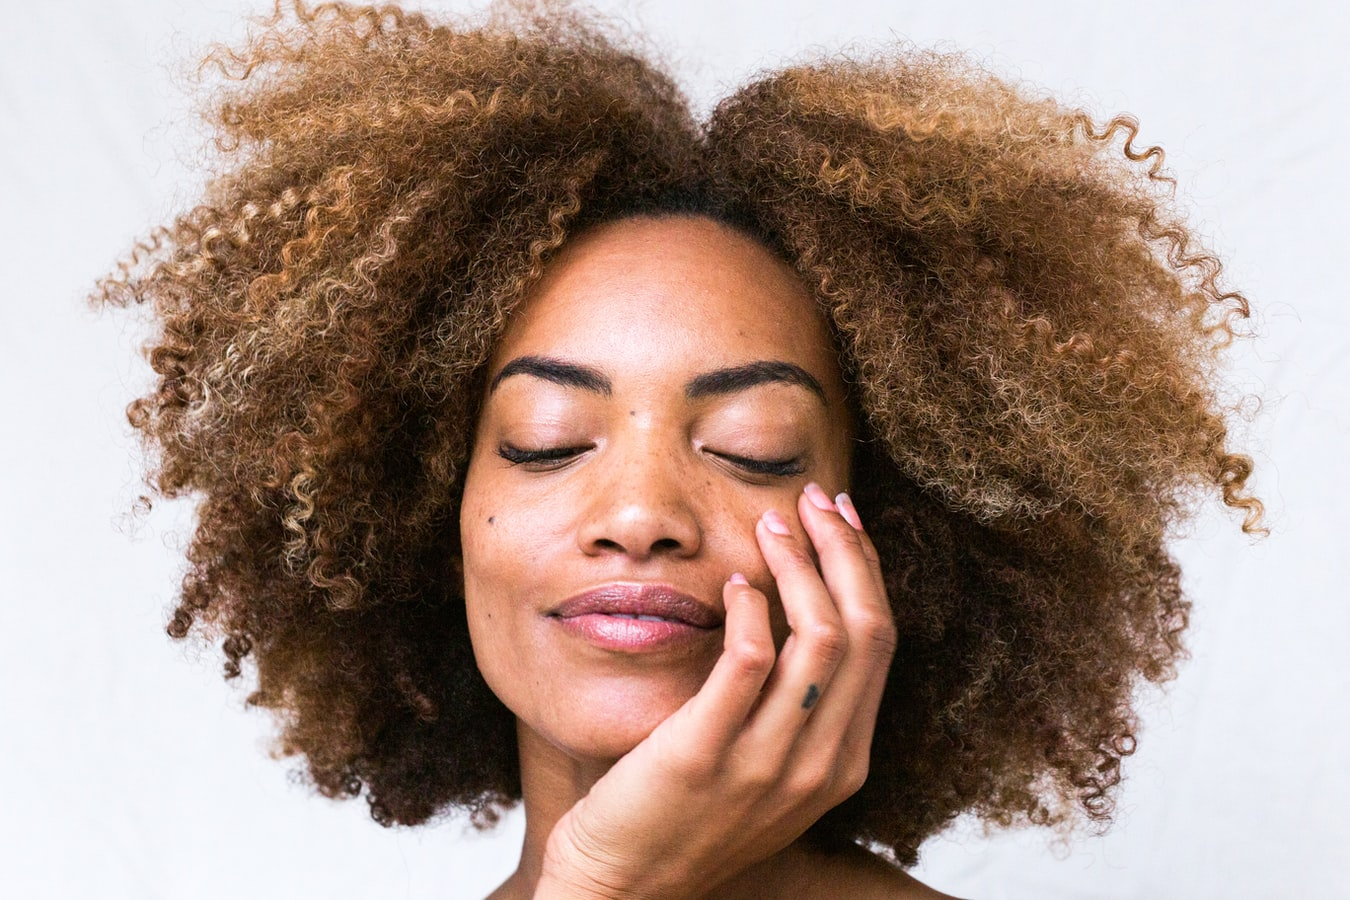 How to take care of dry skin during harmattan in nigeria